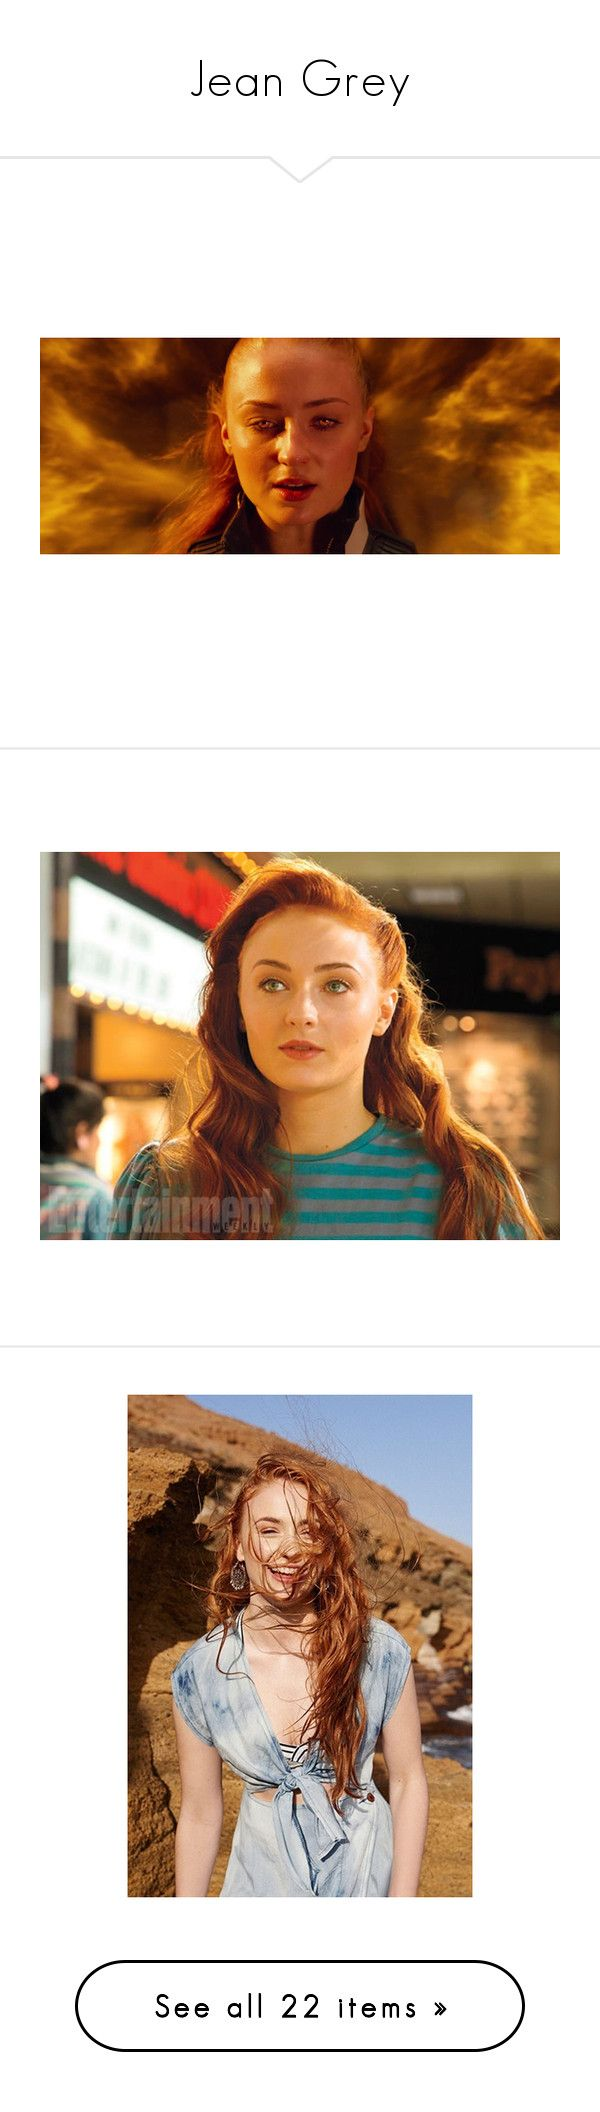 Jean Grey By Anjinha1267 On Polyvore Featuring Home Kitchen Dining Kitchen Gadgets Tools Pictures Sophie Turner Marve Jean Grey Women Clothes Design